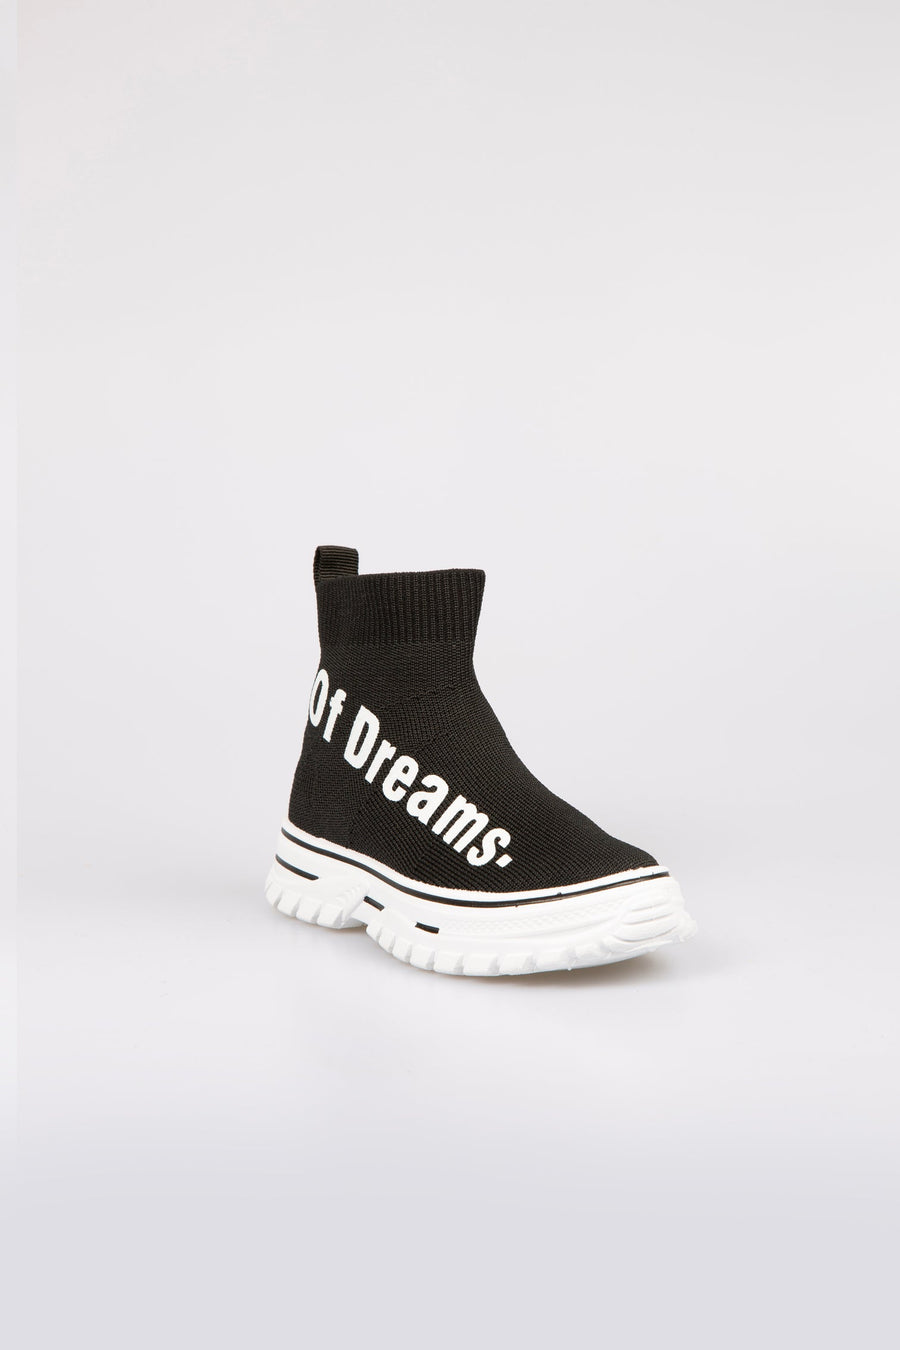 Alisia OF Dreams Printed Chunky Sole Sock Trainers Black/White